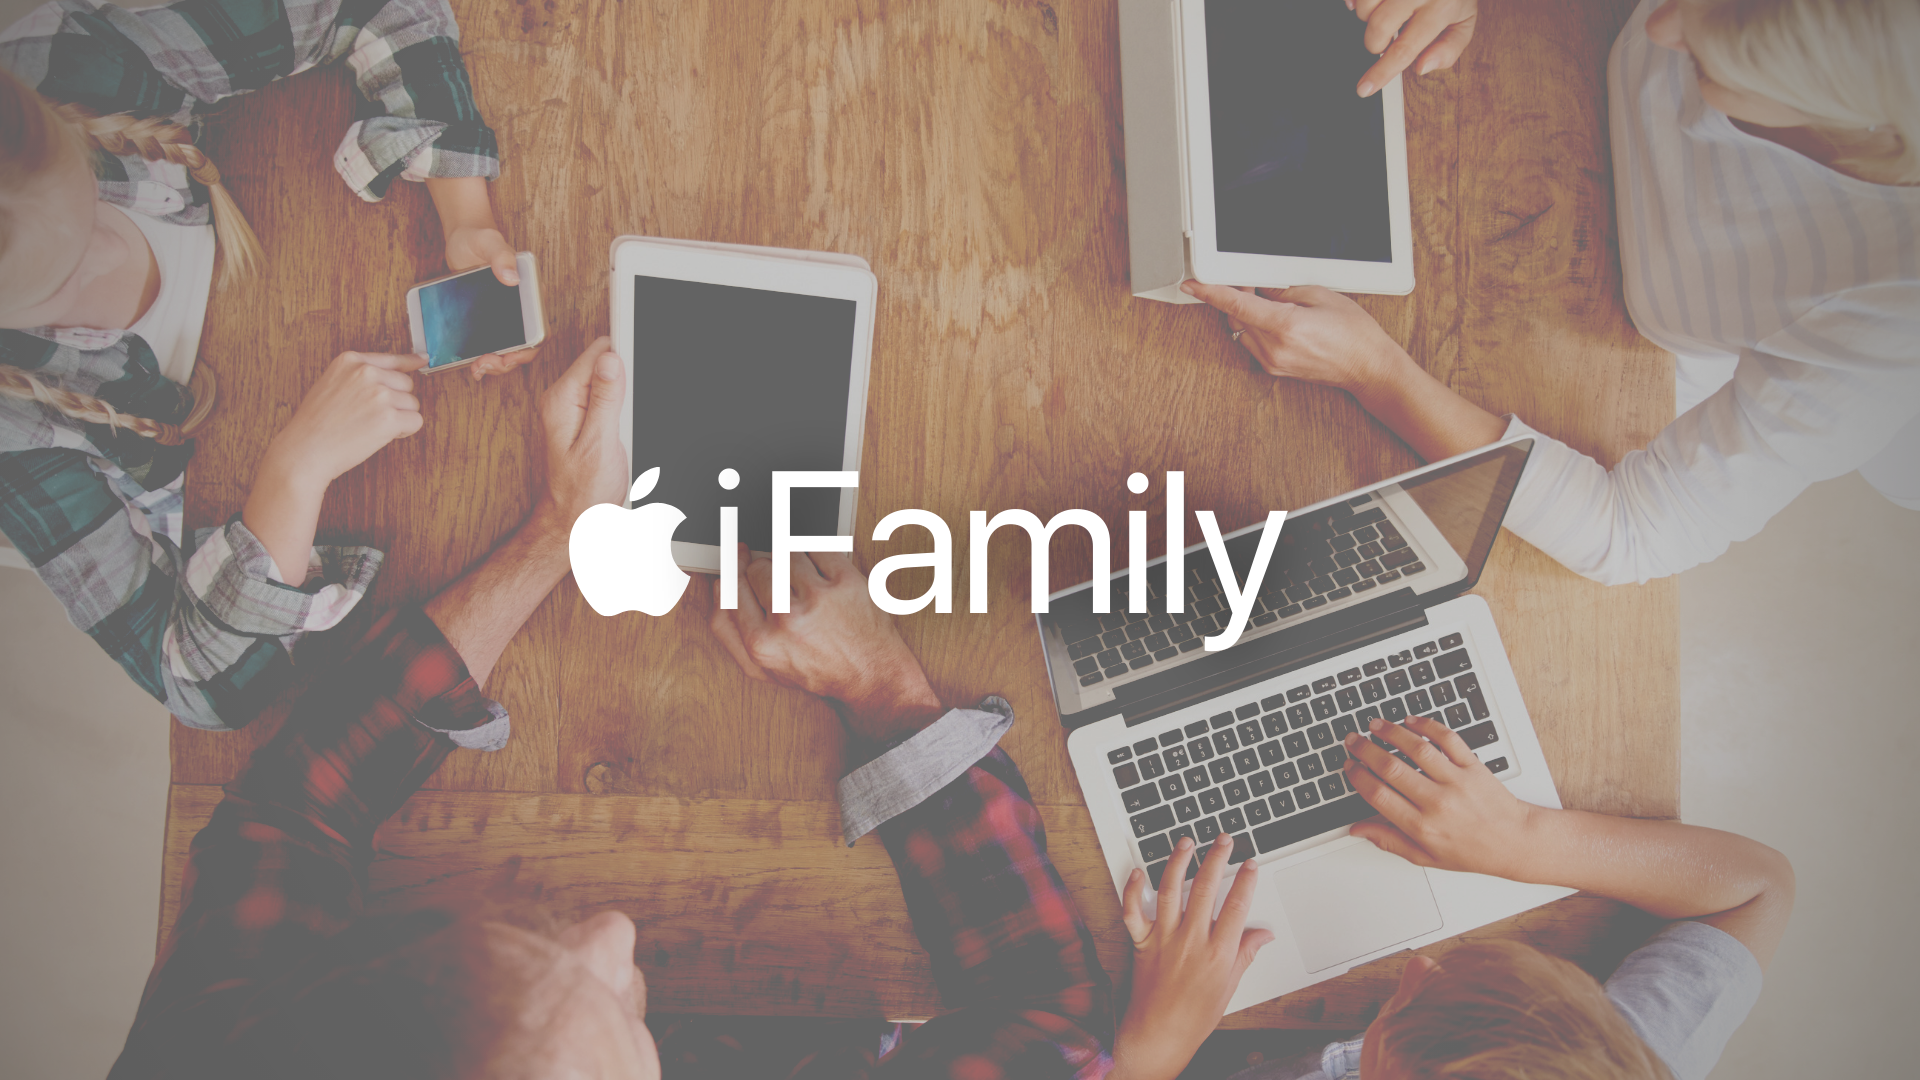 iFamily -Smaller JPG- 1920x1080 image